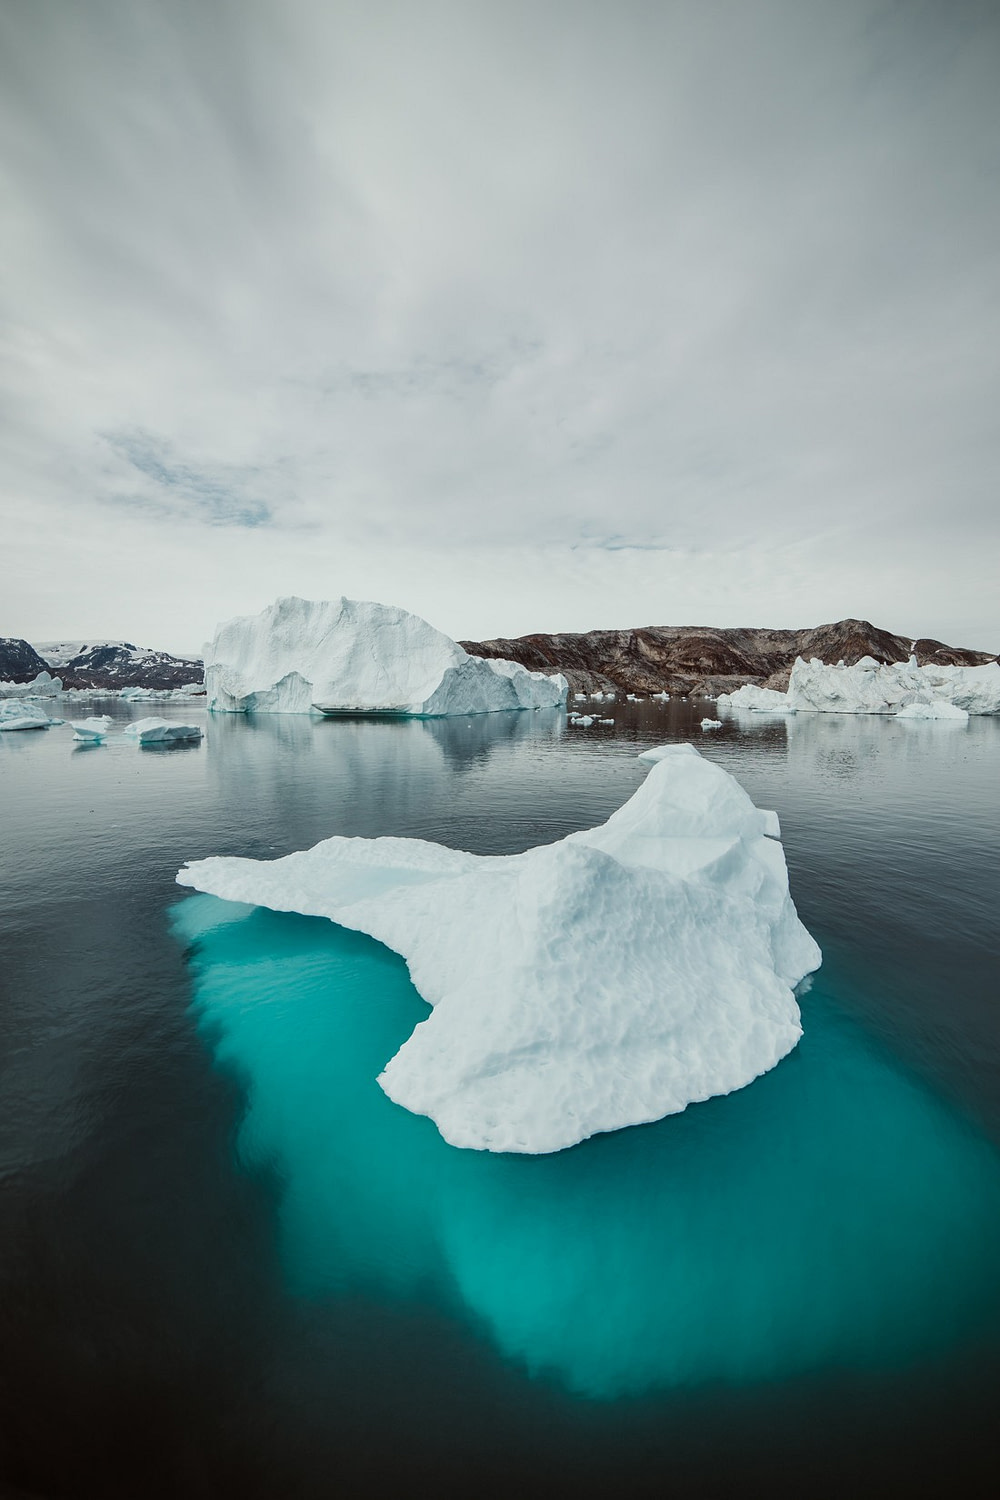 043 greenland arctic sailing expedition - Segel Expedition in Ost-Grönland 2/3